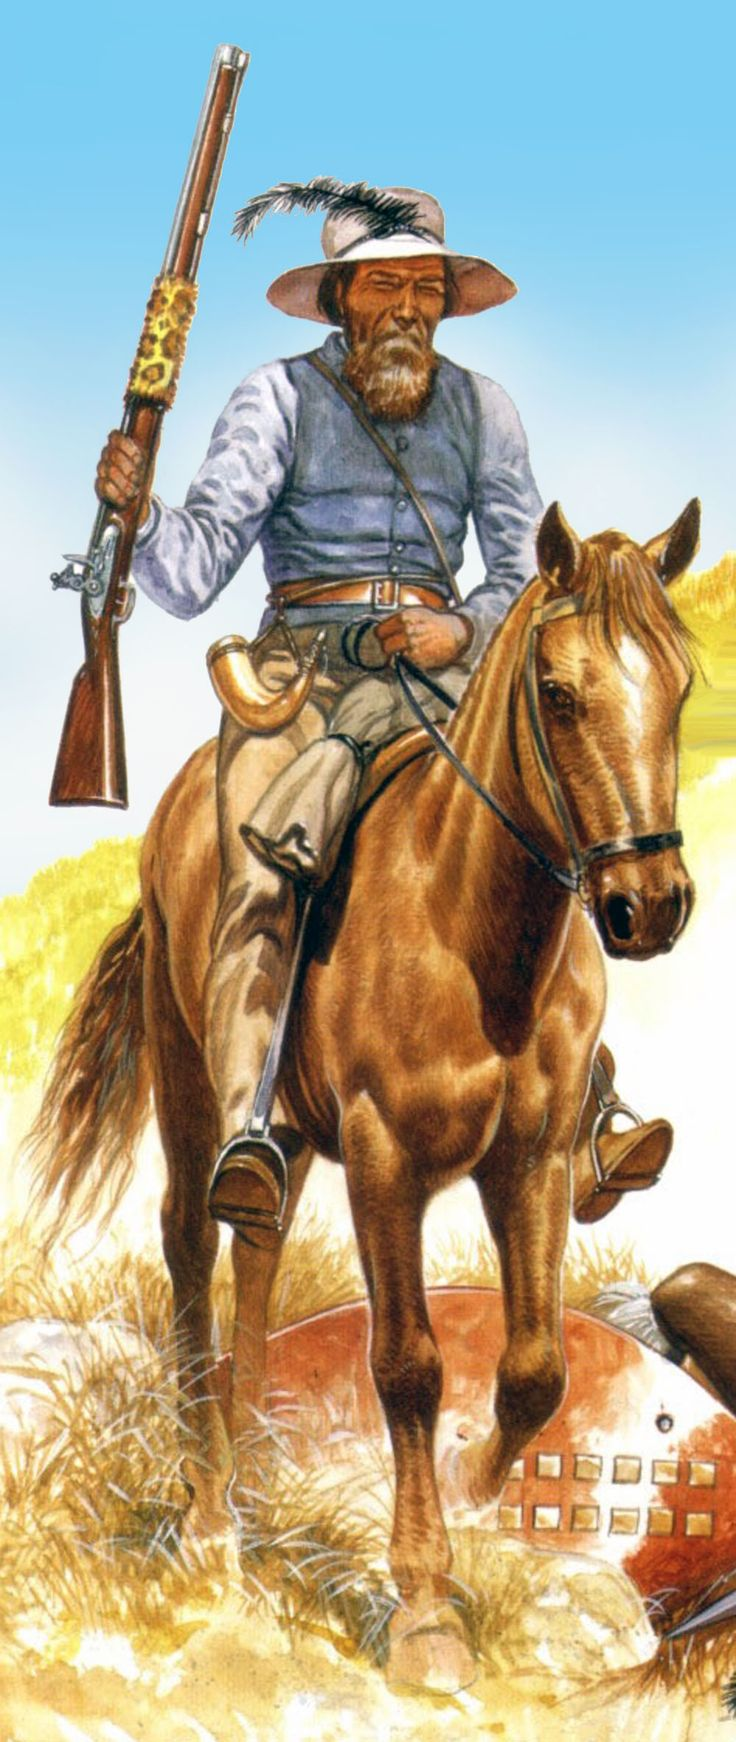 Boer horseman. This could easily be Bertrand, Christaan's right hand man, confidant, and conscience.